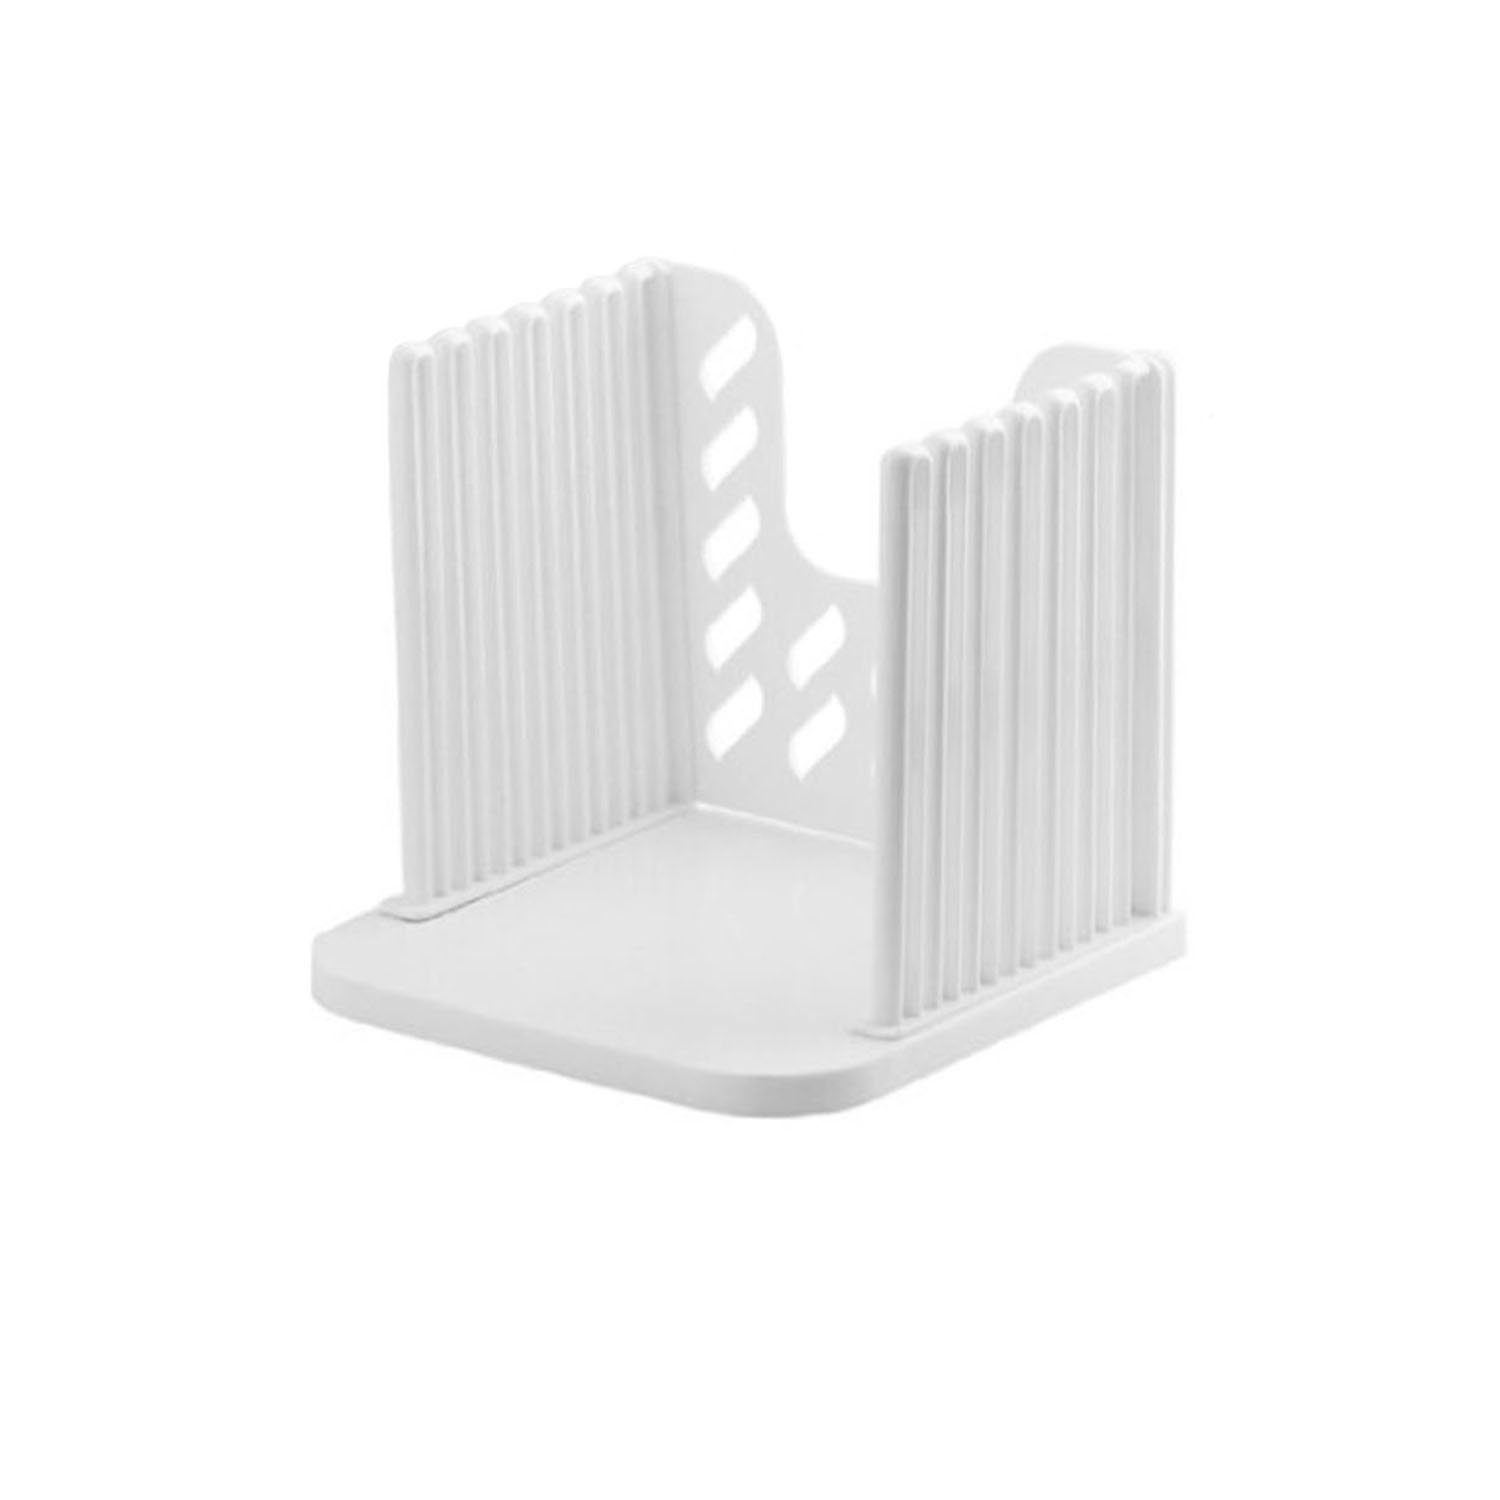 Bread Slicer Toast Slicer Toast Cutting Guide Bread Toast Slicer Bagel Loaf Slicer Sandwich Maker Toast Slicing Machine Folding and Adjustable Thicknesses Bread Cutter,White